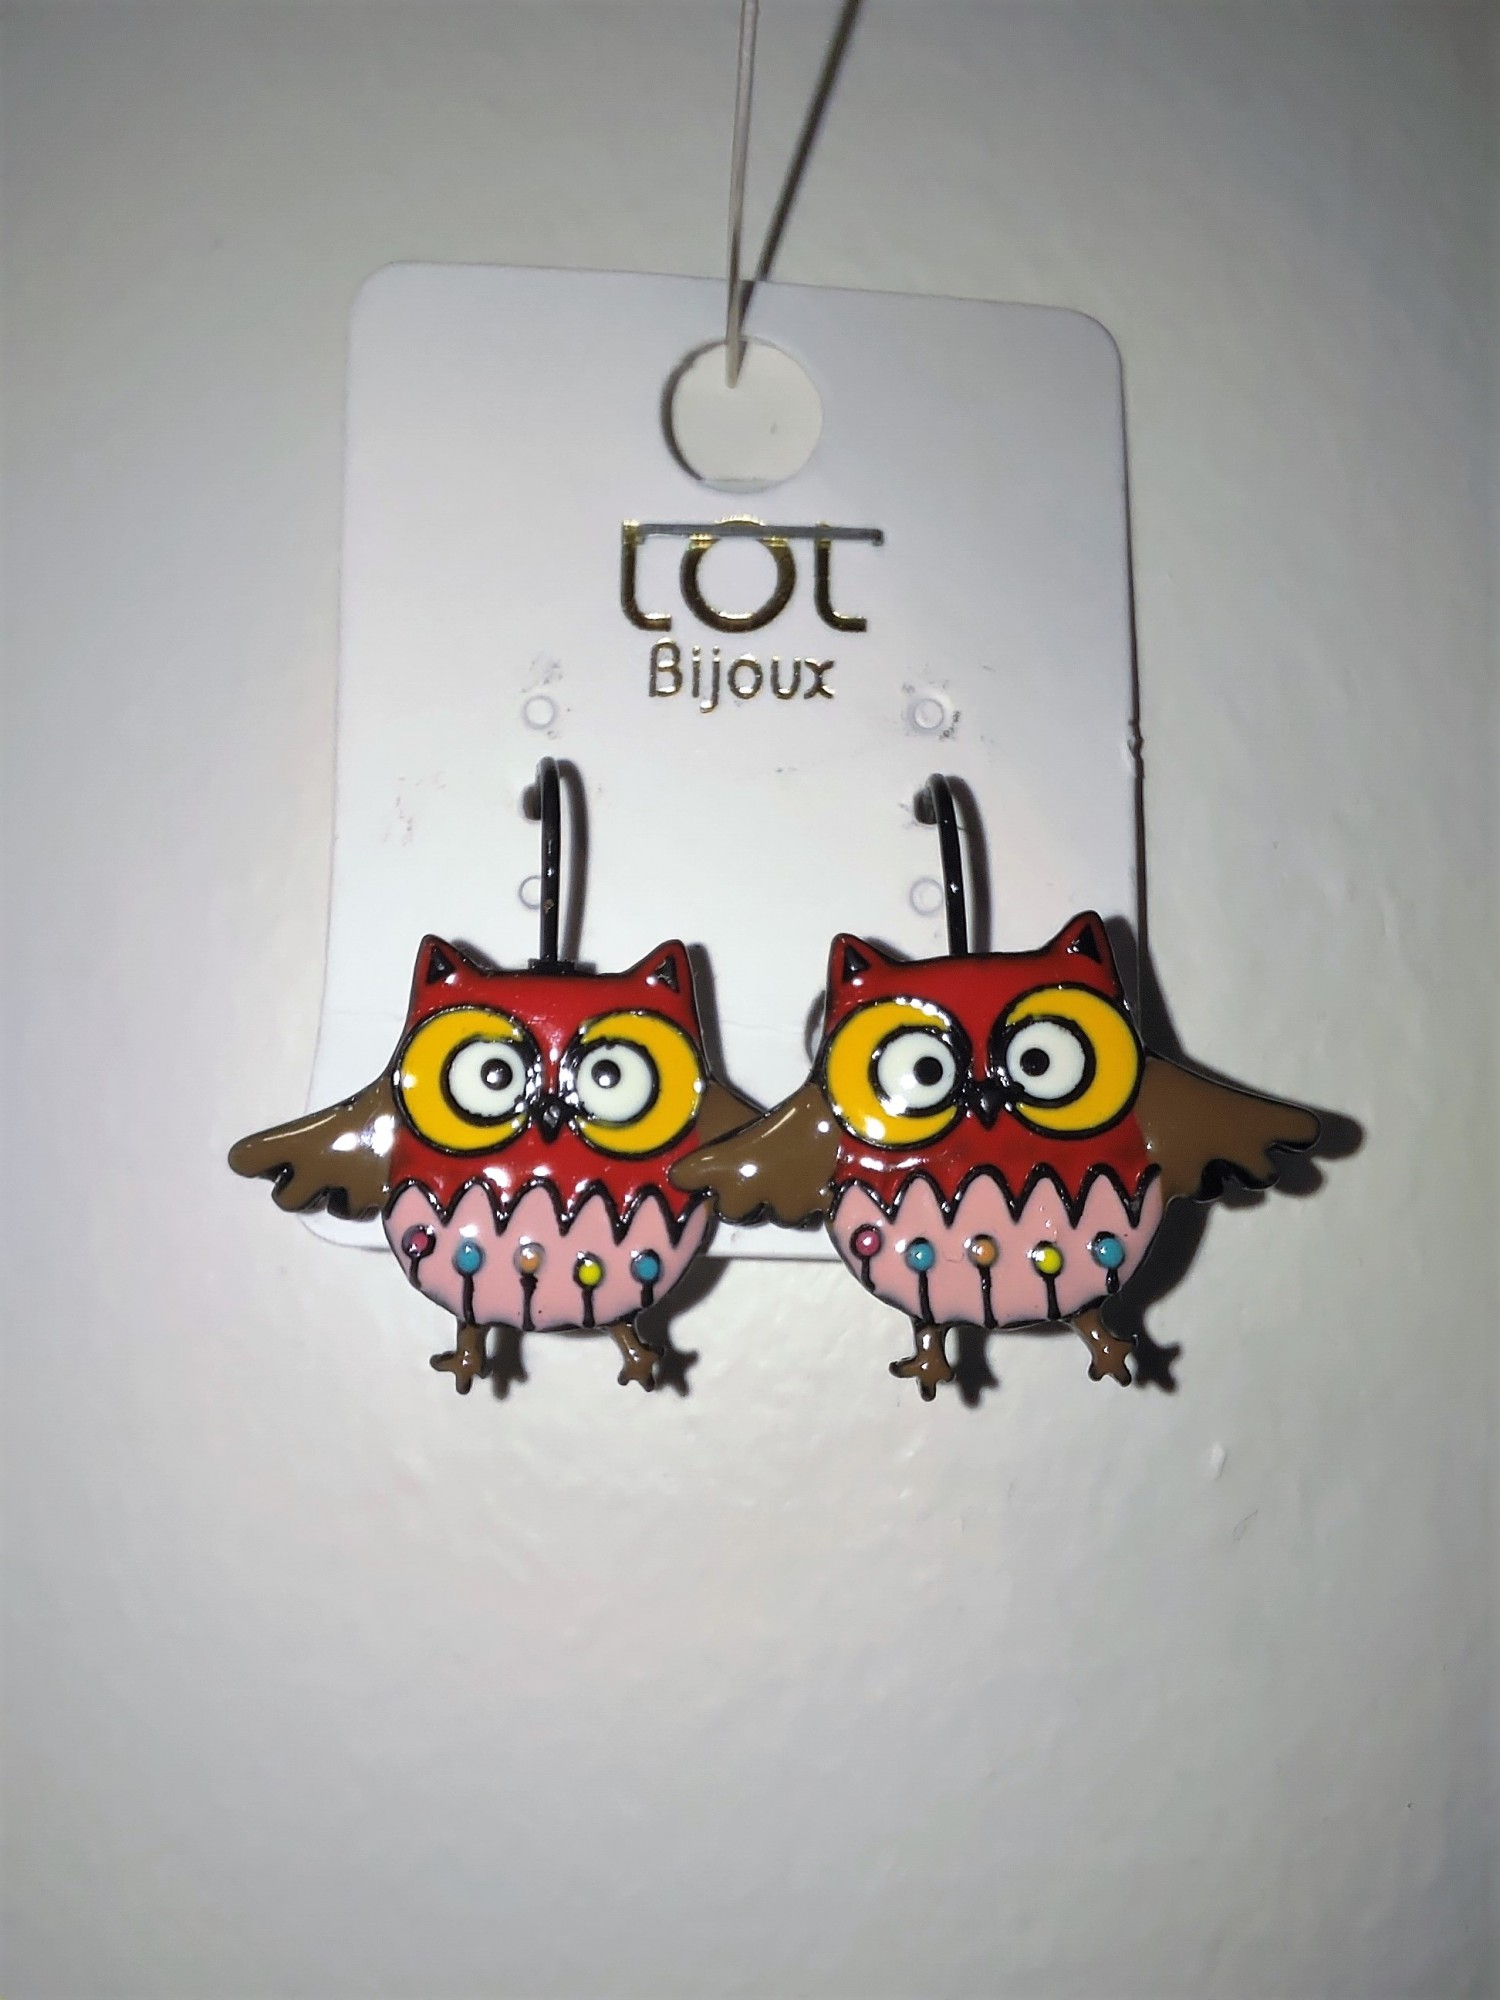 Lol earings, funny Jewelry, red owl